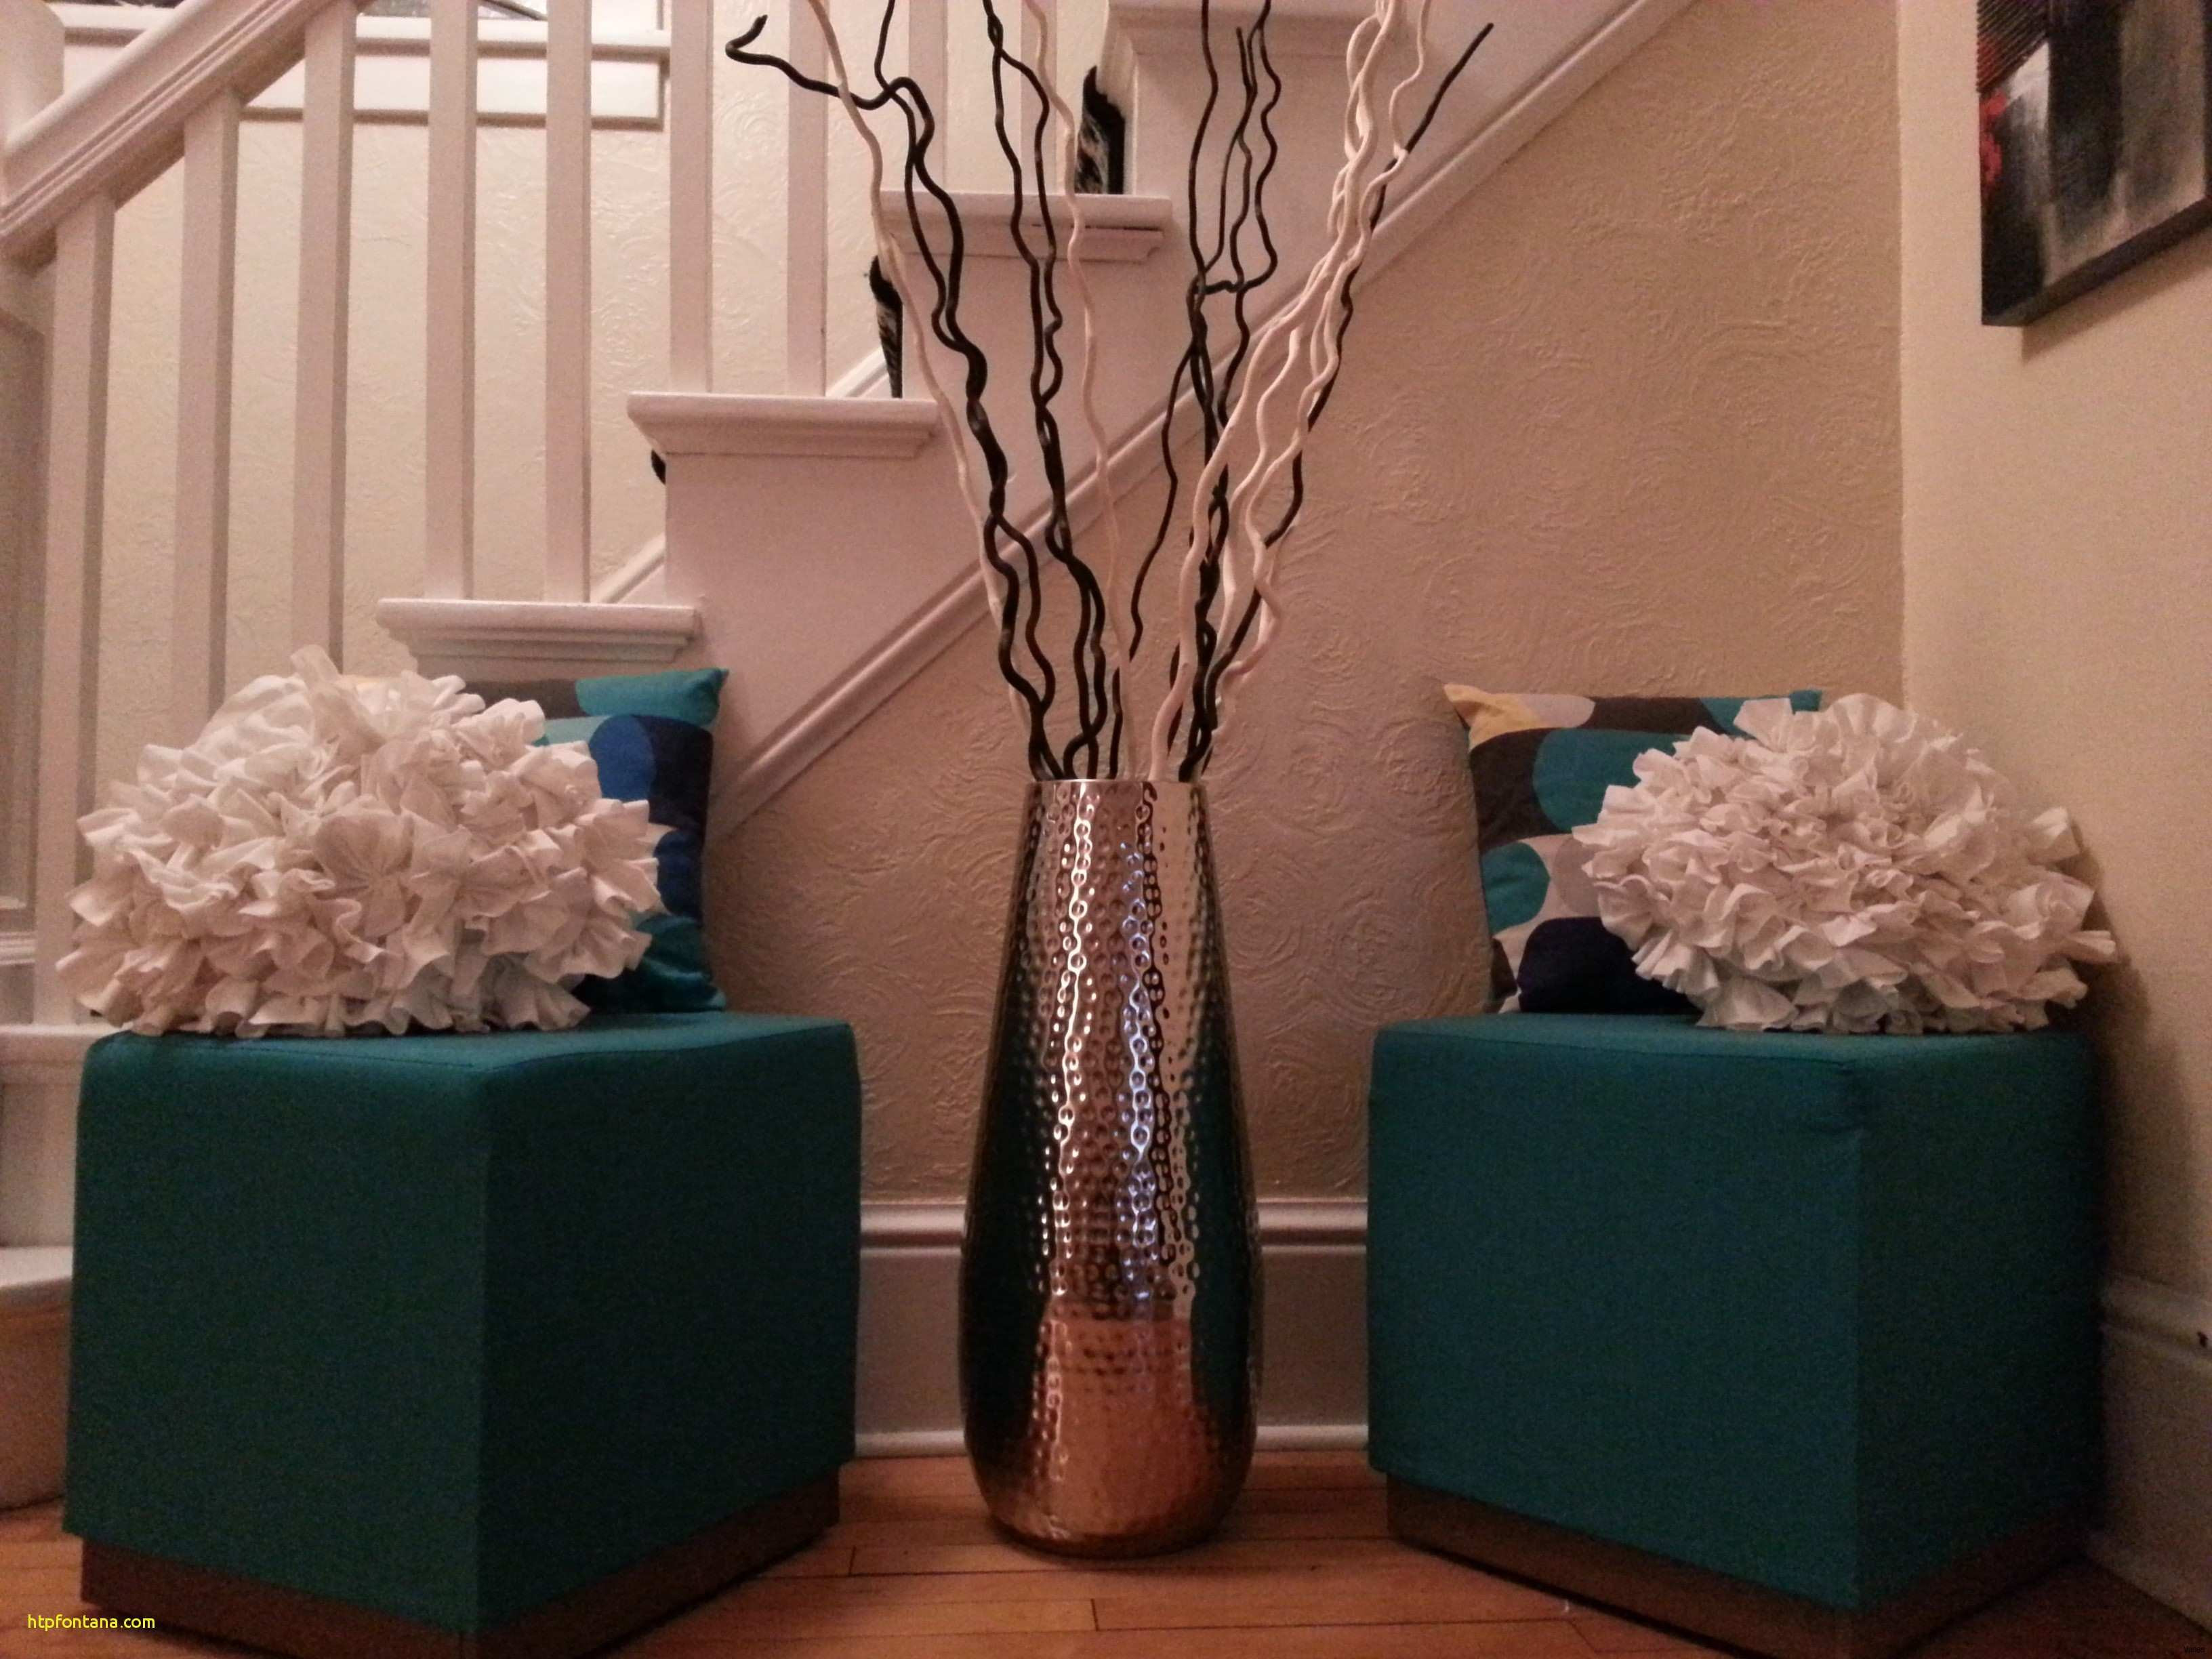 floor vase with branches of decorating ideas for vases elegant il fullxfull nny9h vases flower for decorating ideas for vases elegant modern living room vases beautiful flower vase for decoration idea of